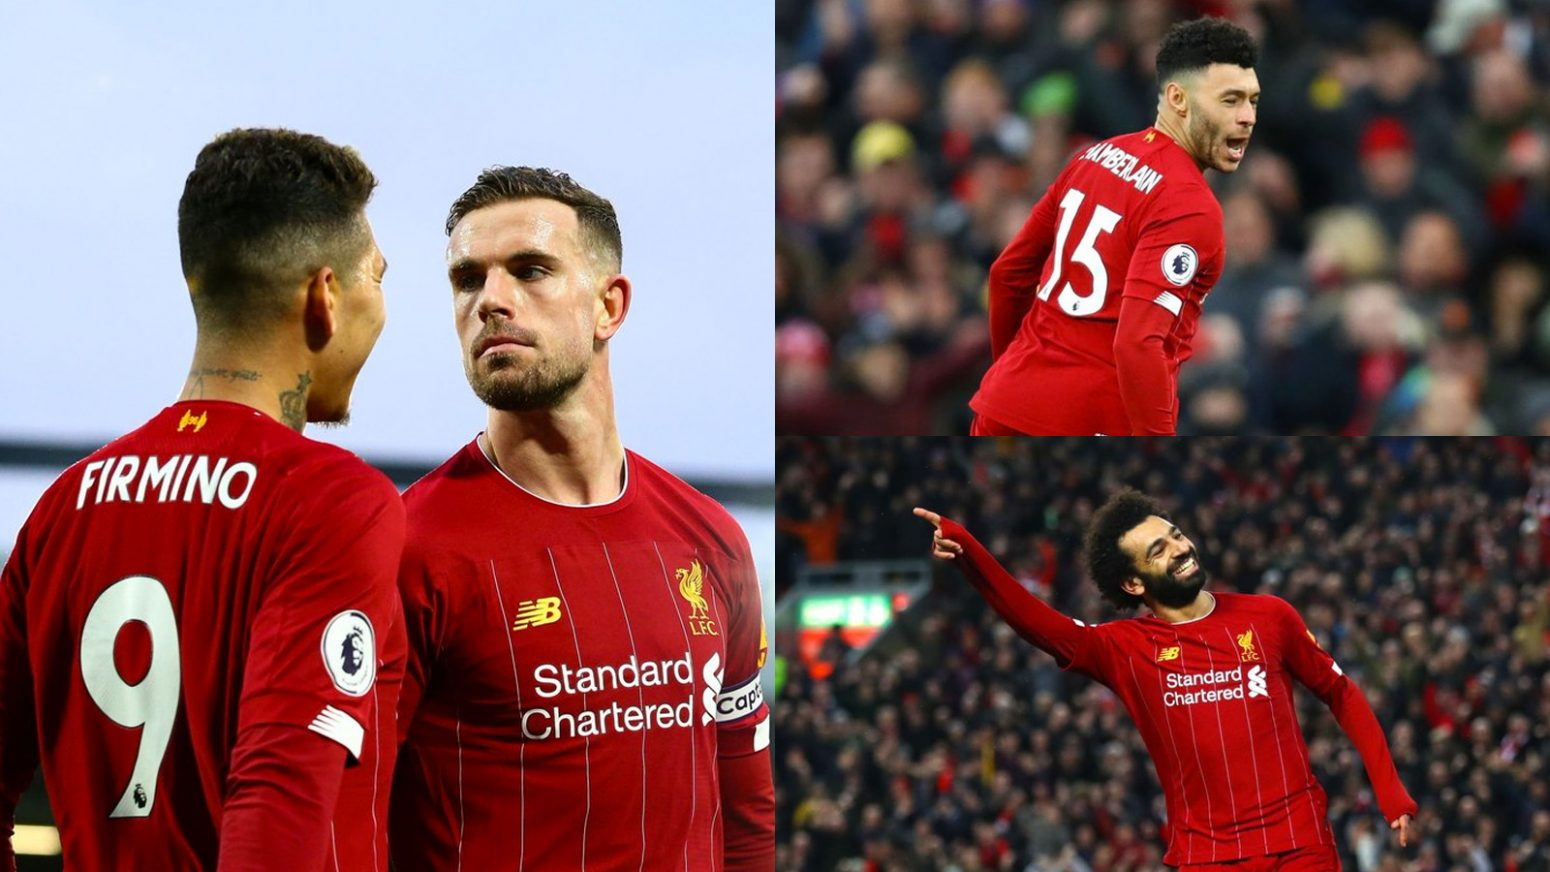 The best snaps from Anfield as Liverpool cruise to victory over Southampton